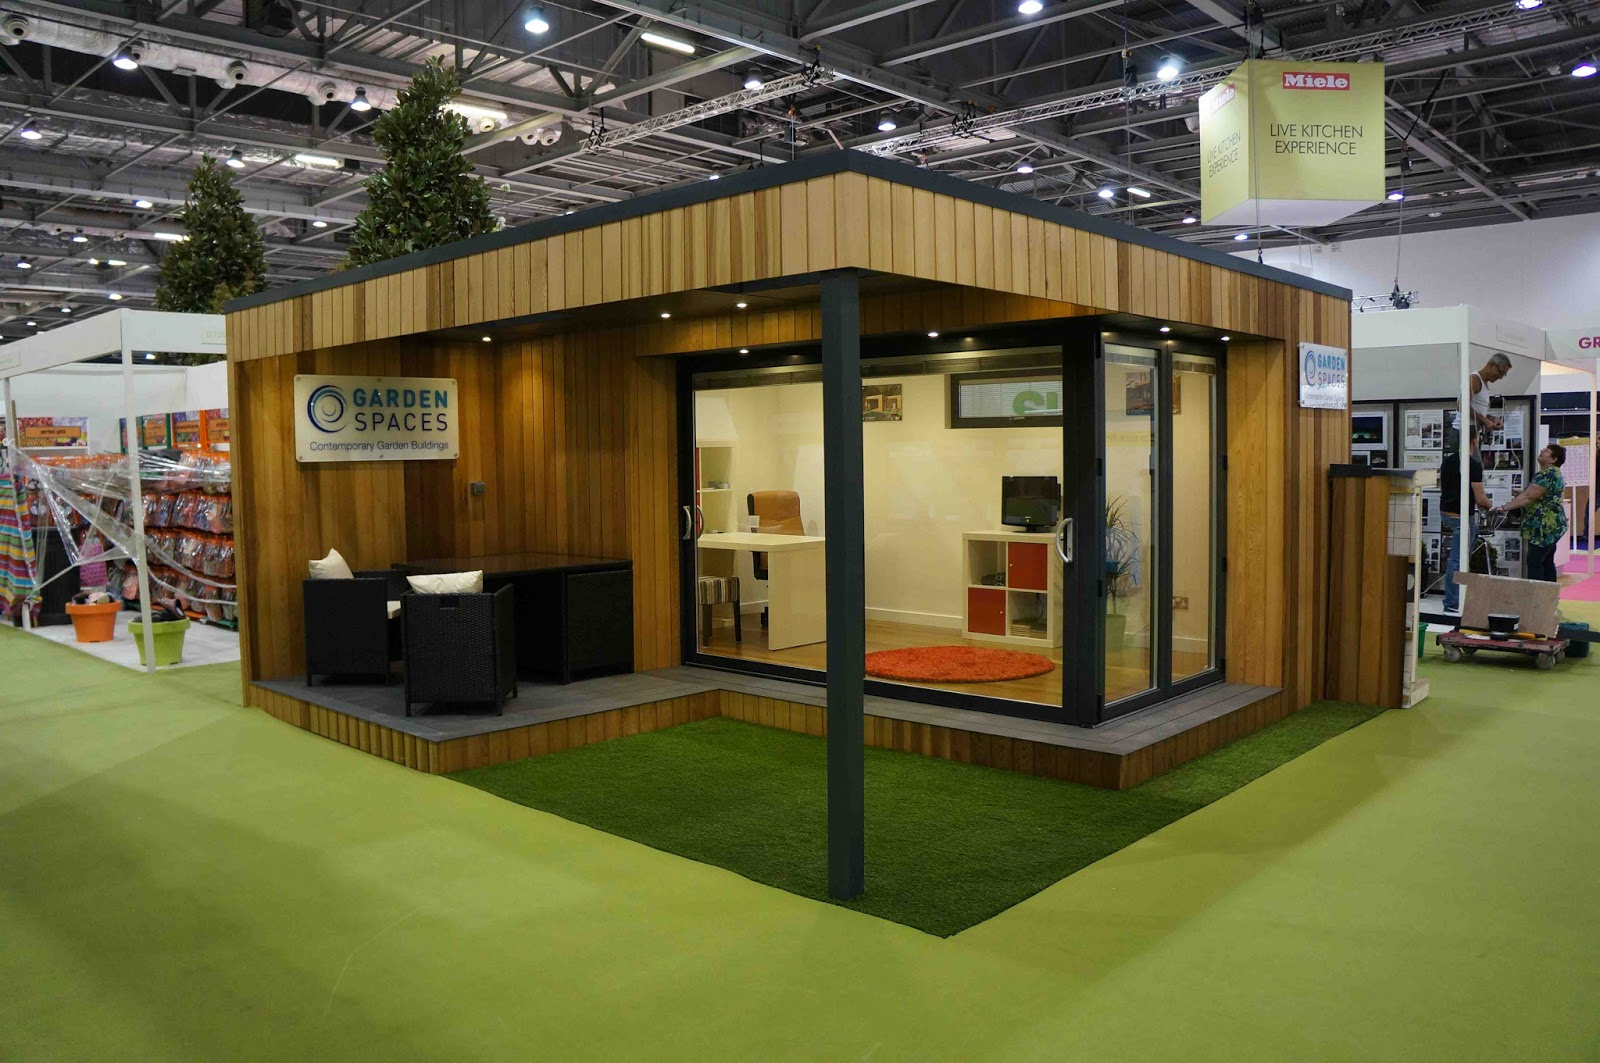 office garden design. Garden Offices At Grand Designs Live Office Design I